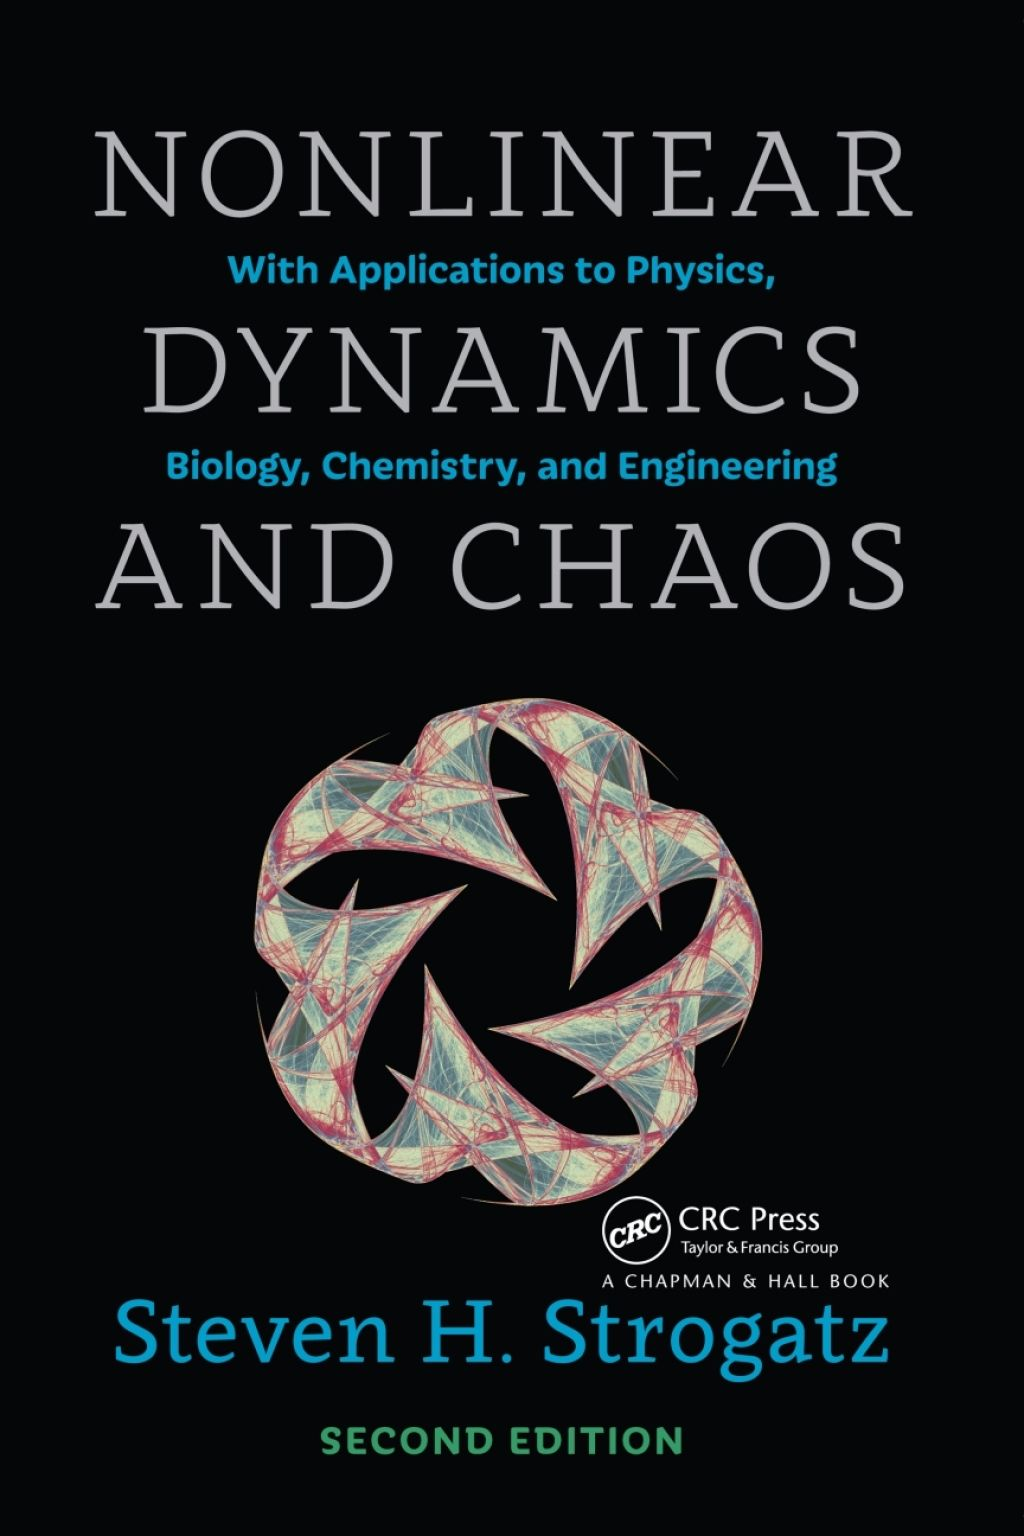 Dynamics and chaos ebook rental in 2020